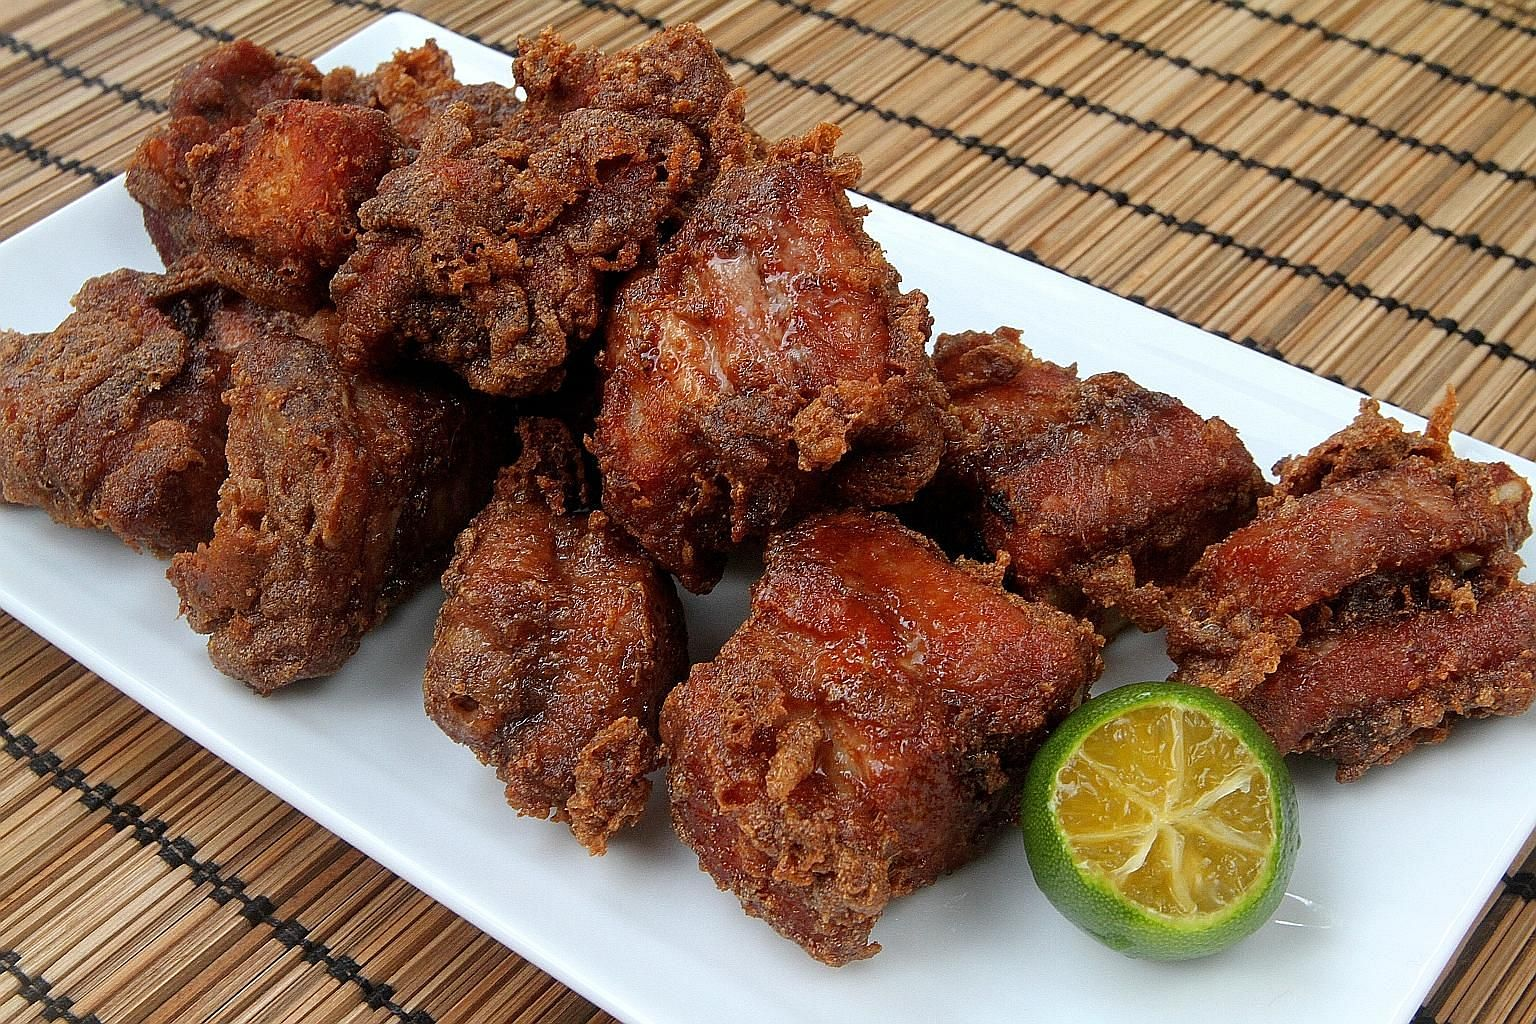 For flavourful har cheong (prawn paste) ribs, marinate the meat for four hours.